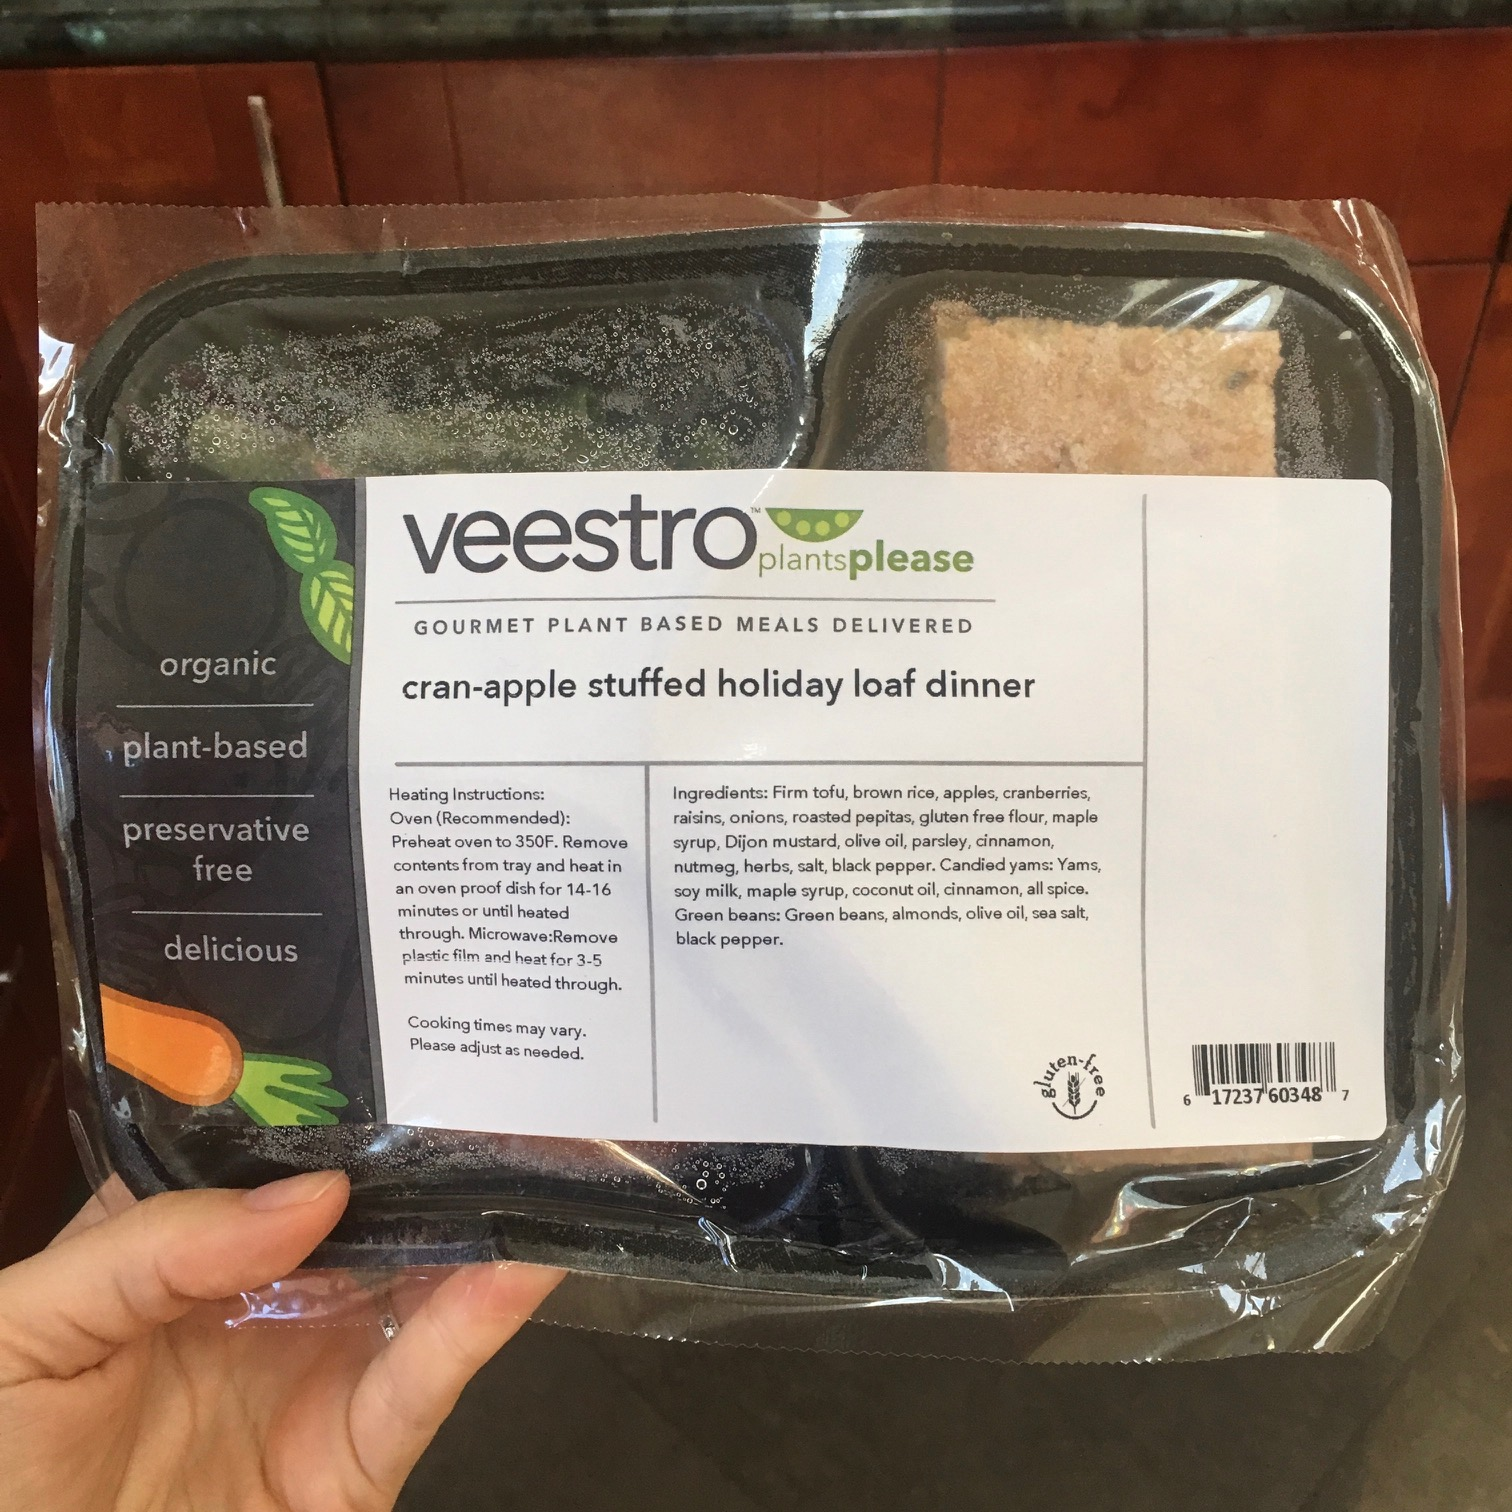 Veestro vegan meals